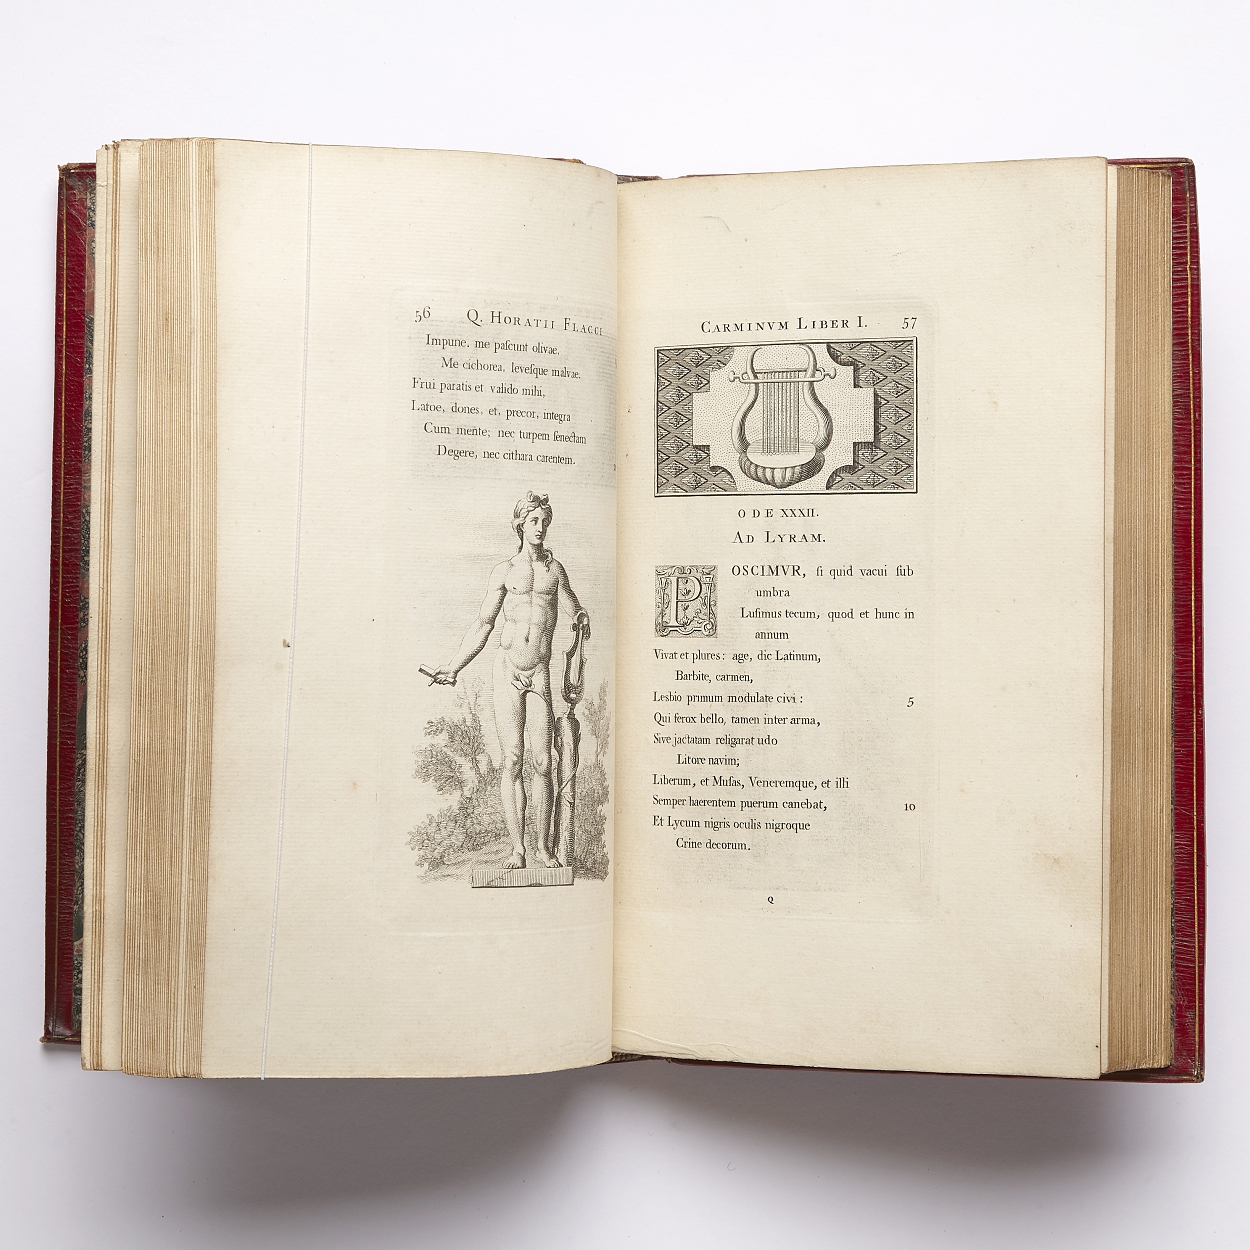 Pine's edition of Horace 1733-37 in red morocco